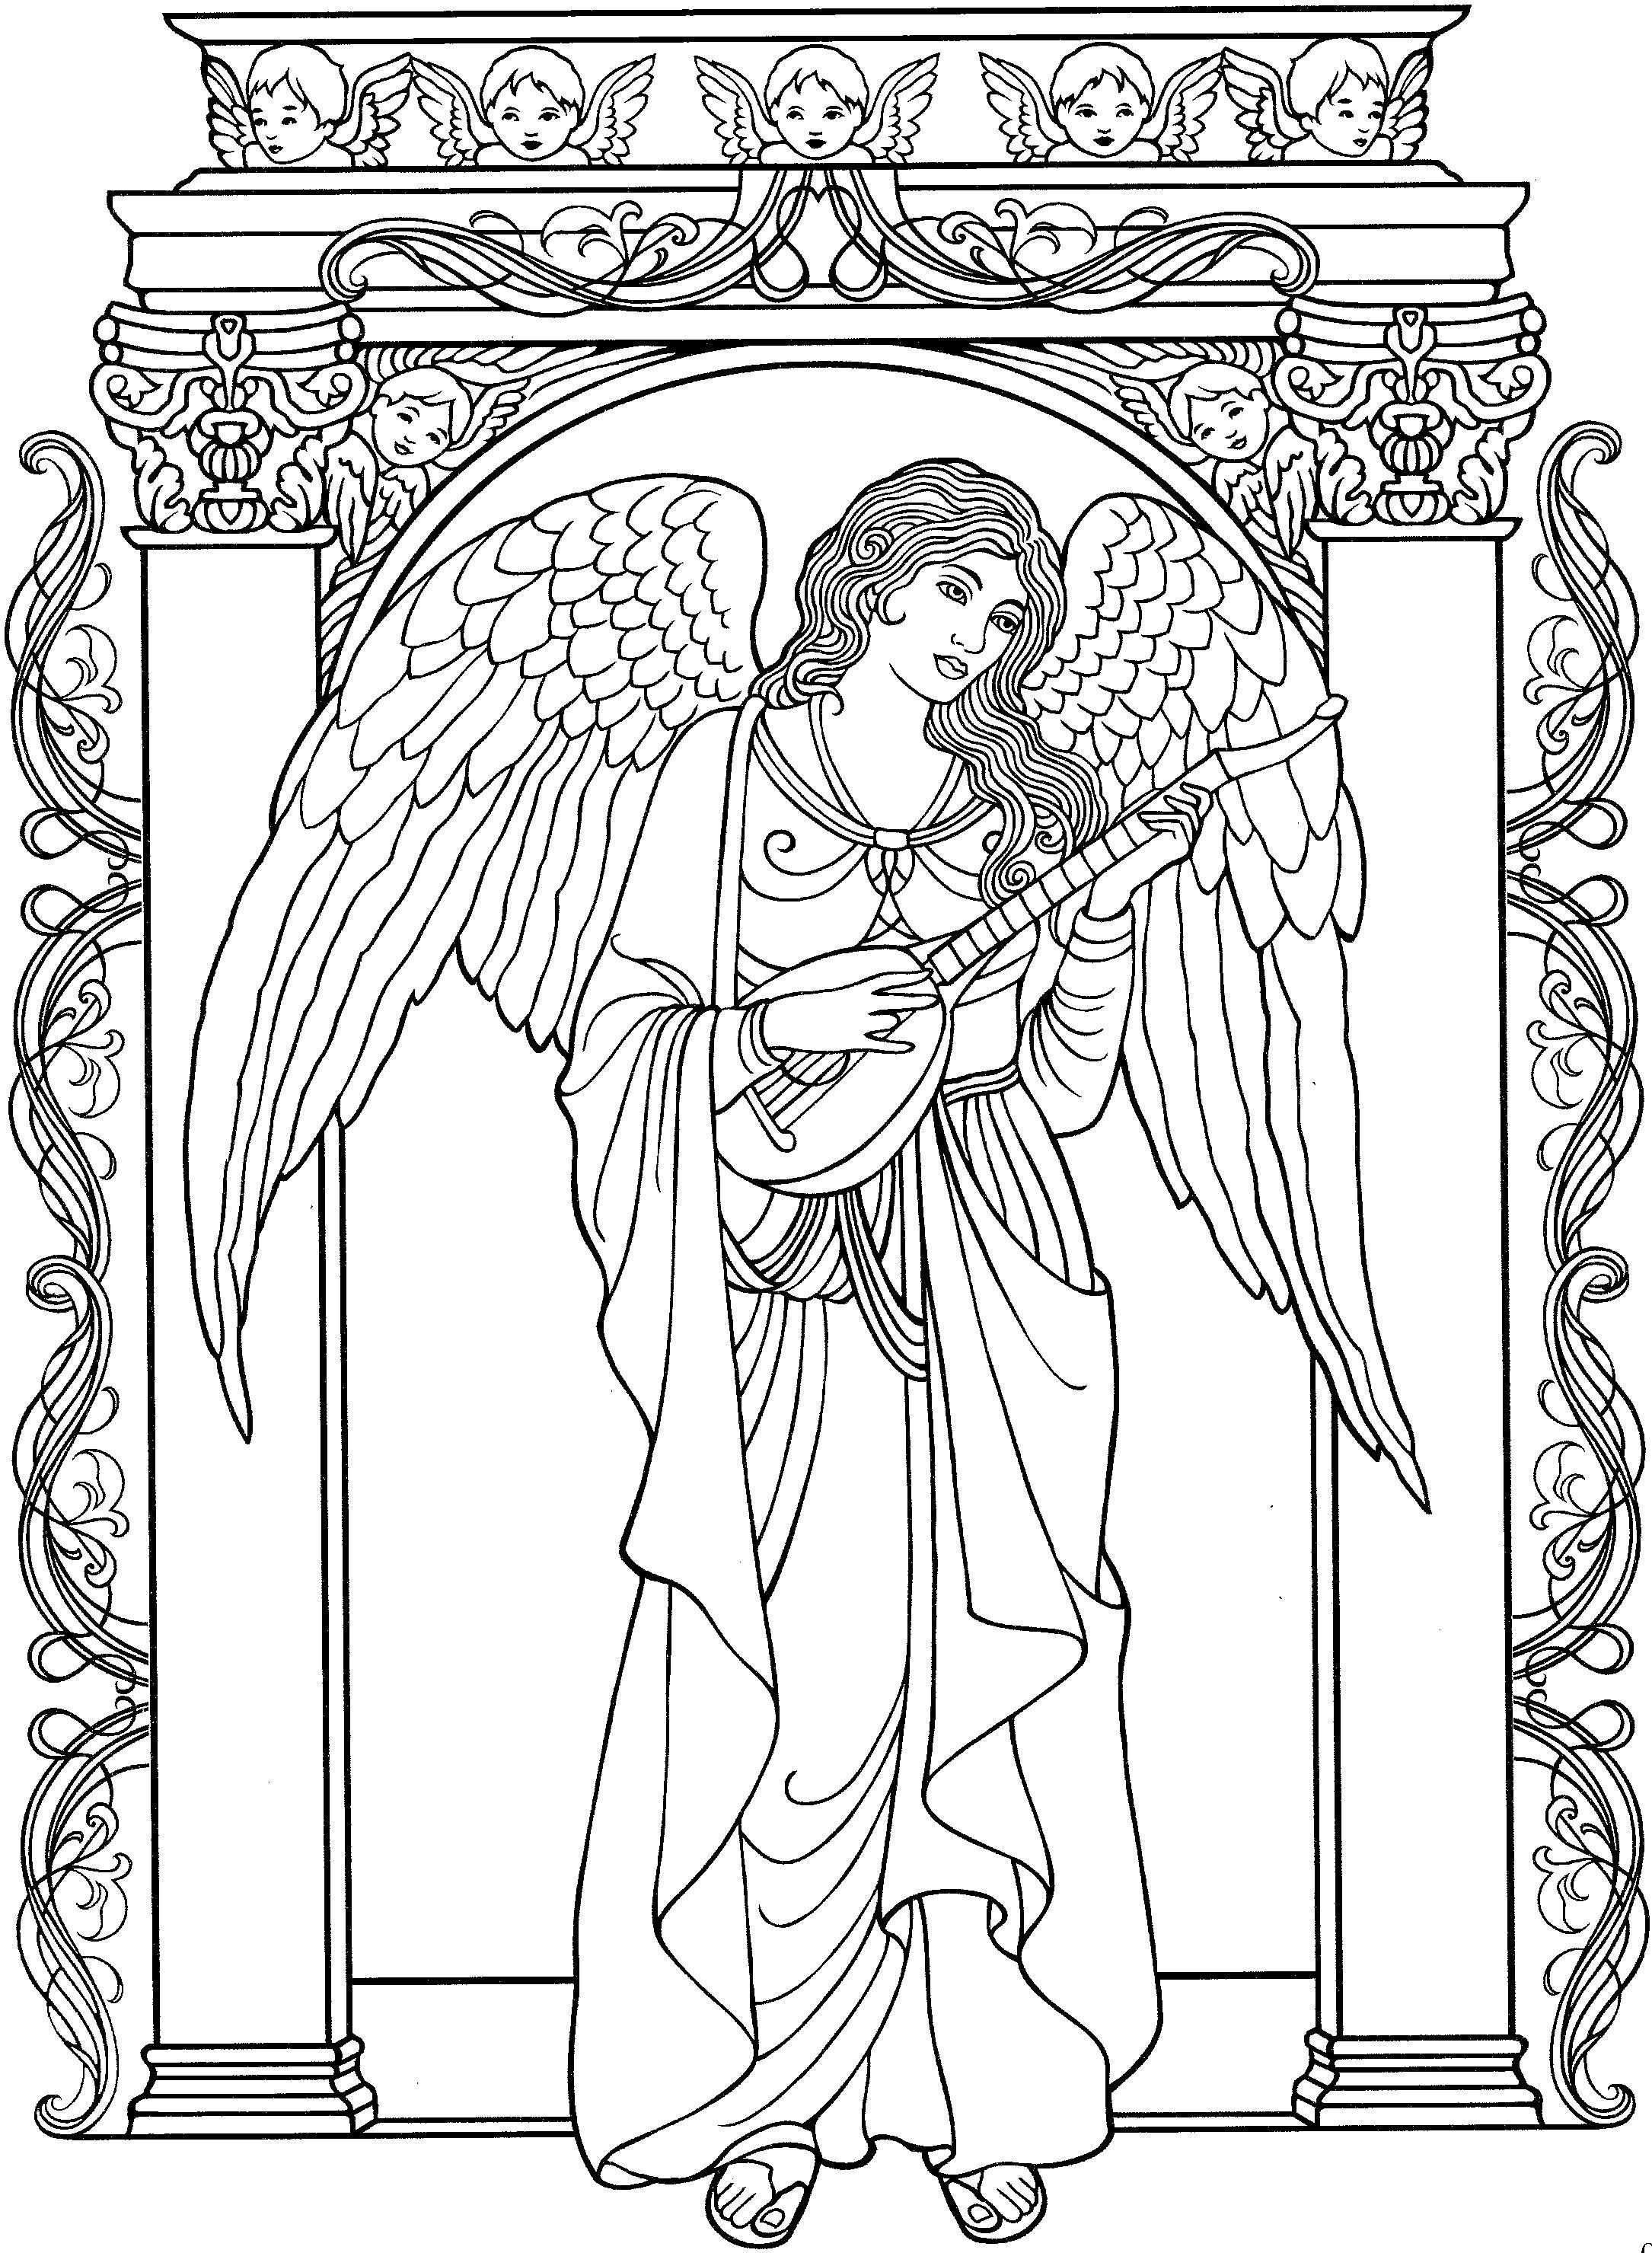 Coloring Pages Of Angels Dea5933046c34b20f8f5aada812b1cfd Angel Coloring Pages Abstract Coloring Pages Coloring Pages